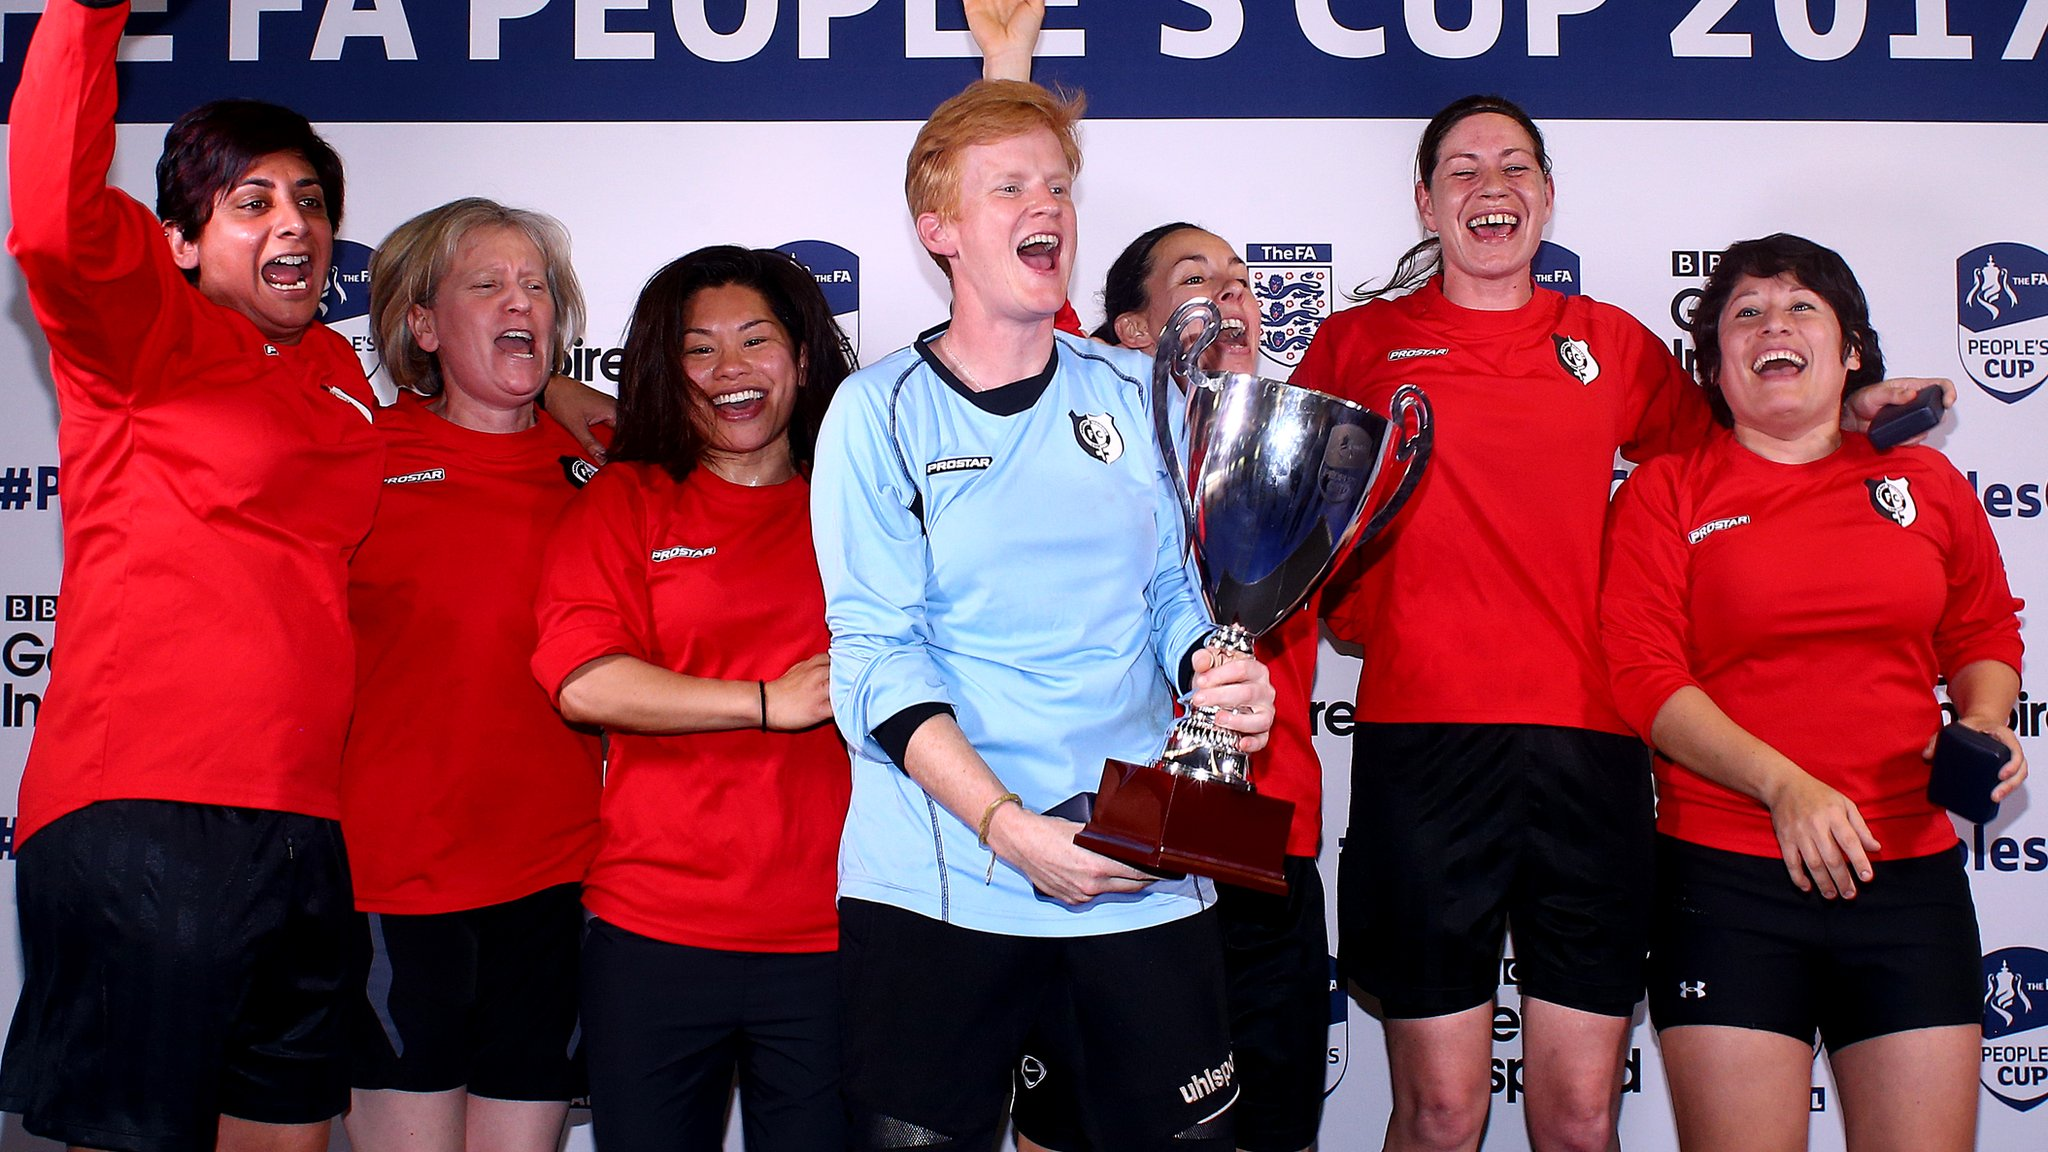 FA People's Cup 2018: Sign up for the free five-a-side tournament